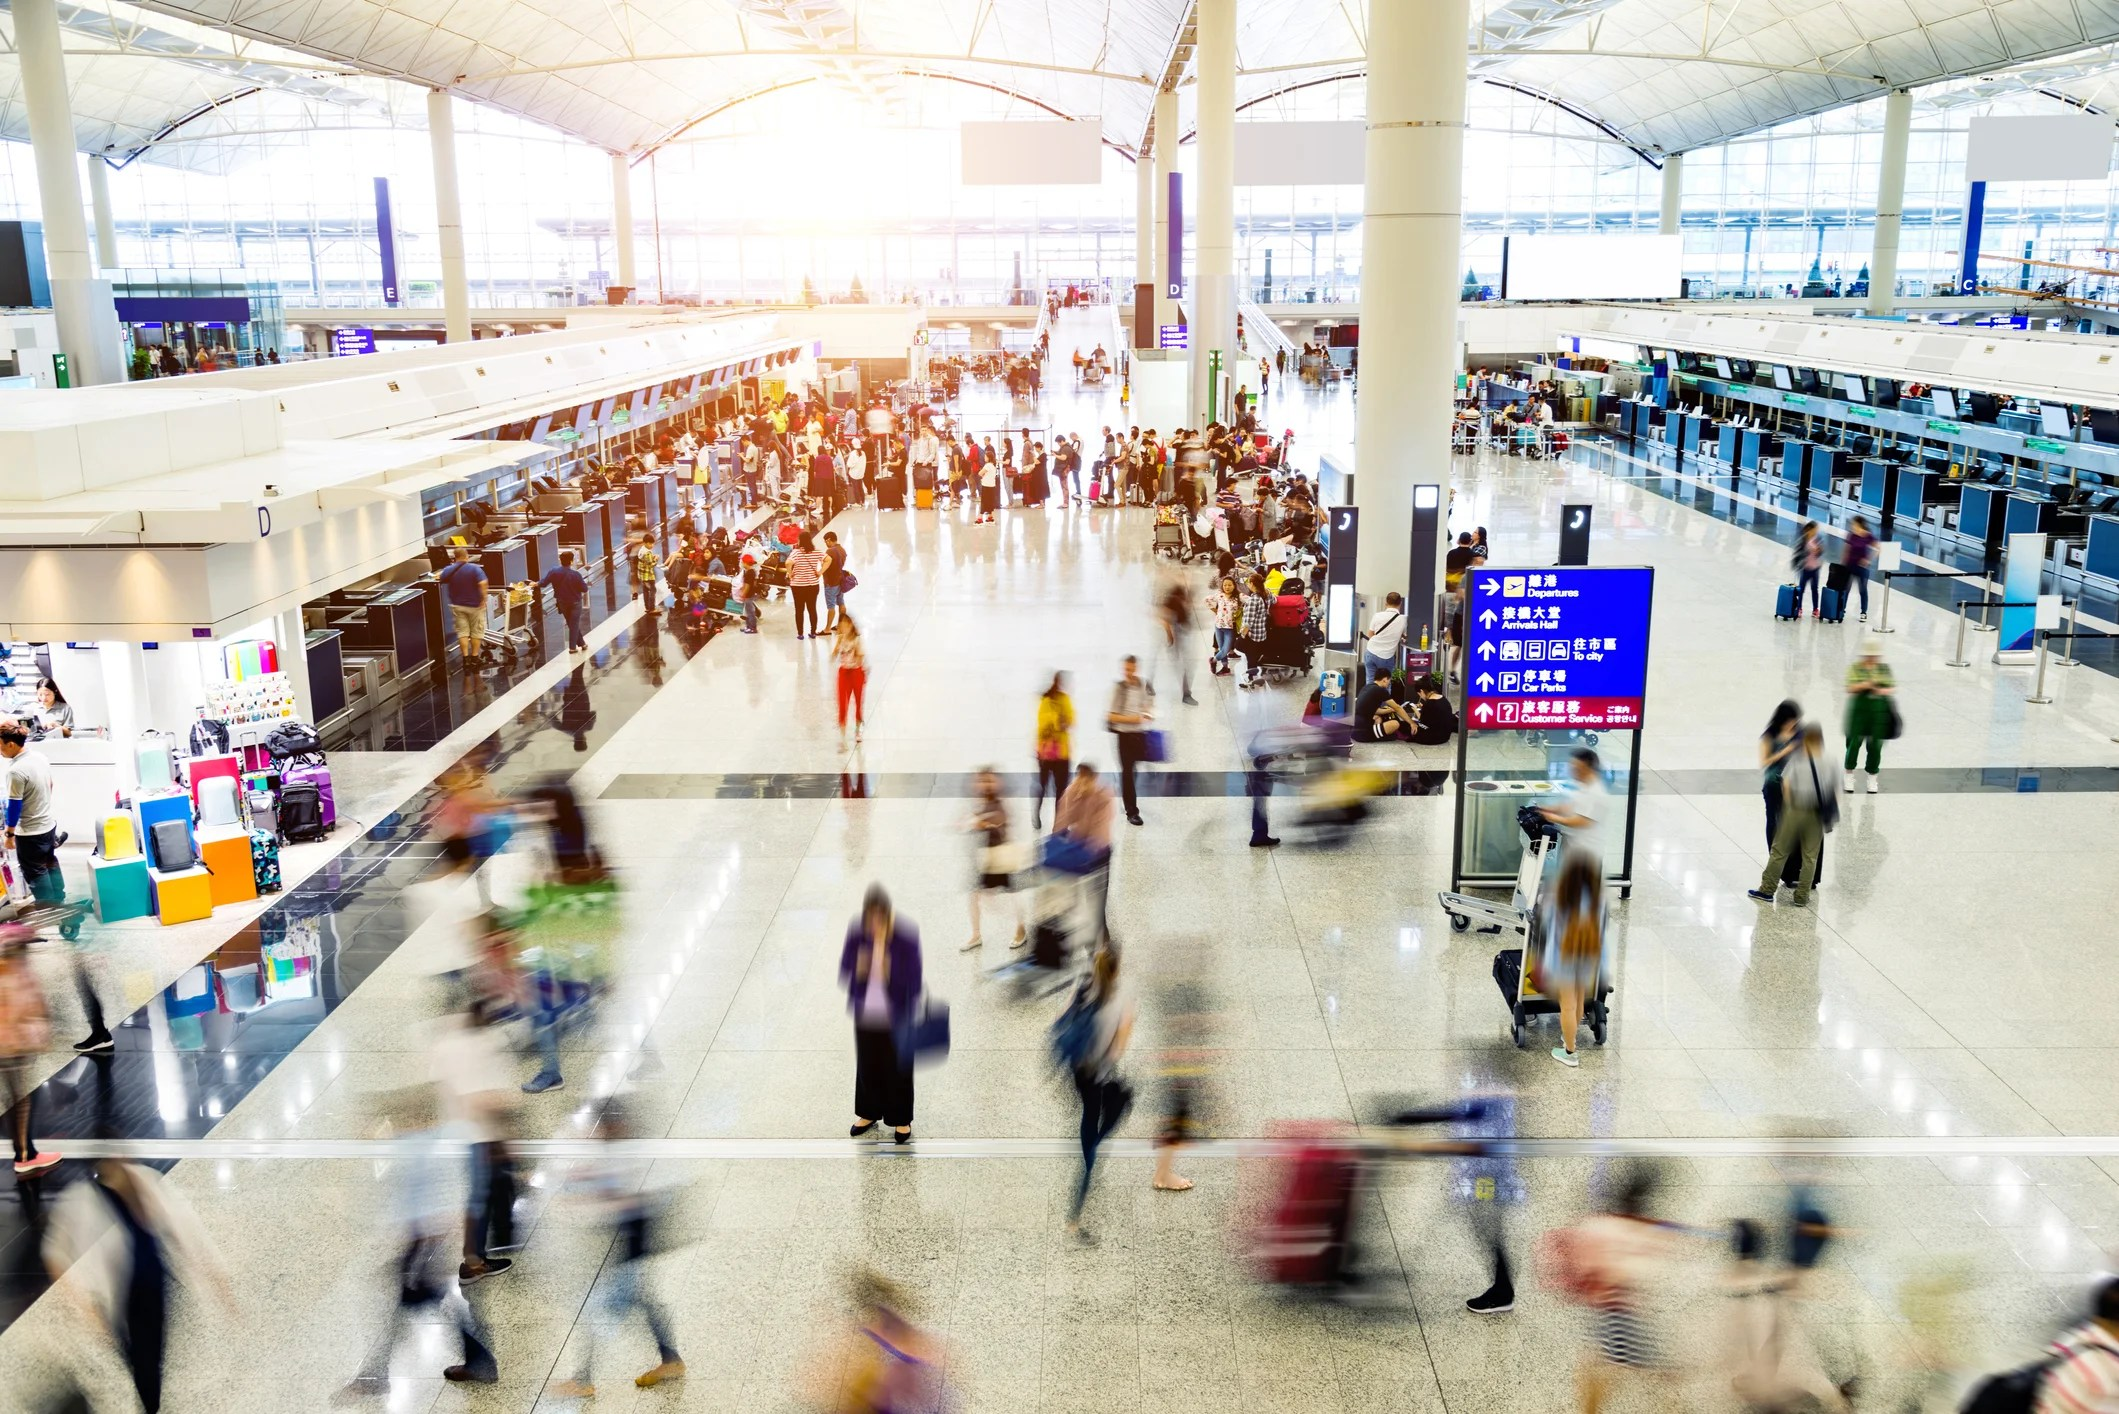 How Airports Are Designed to Influence Your Behavior